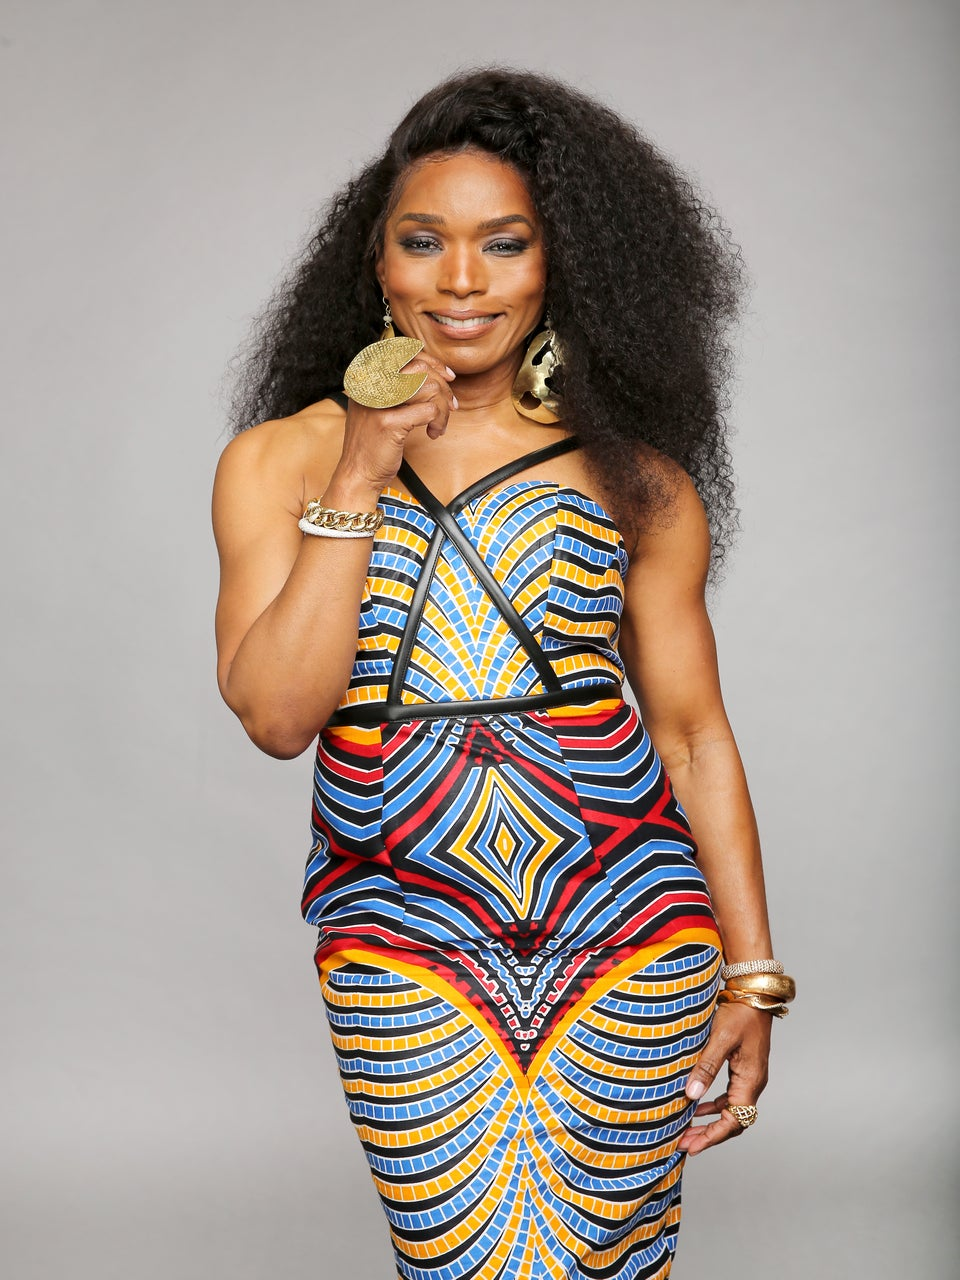 Angela Bassett Wears $169 African-Inspired Dress